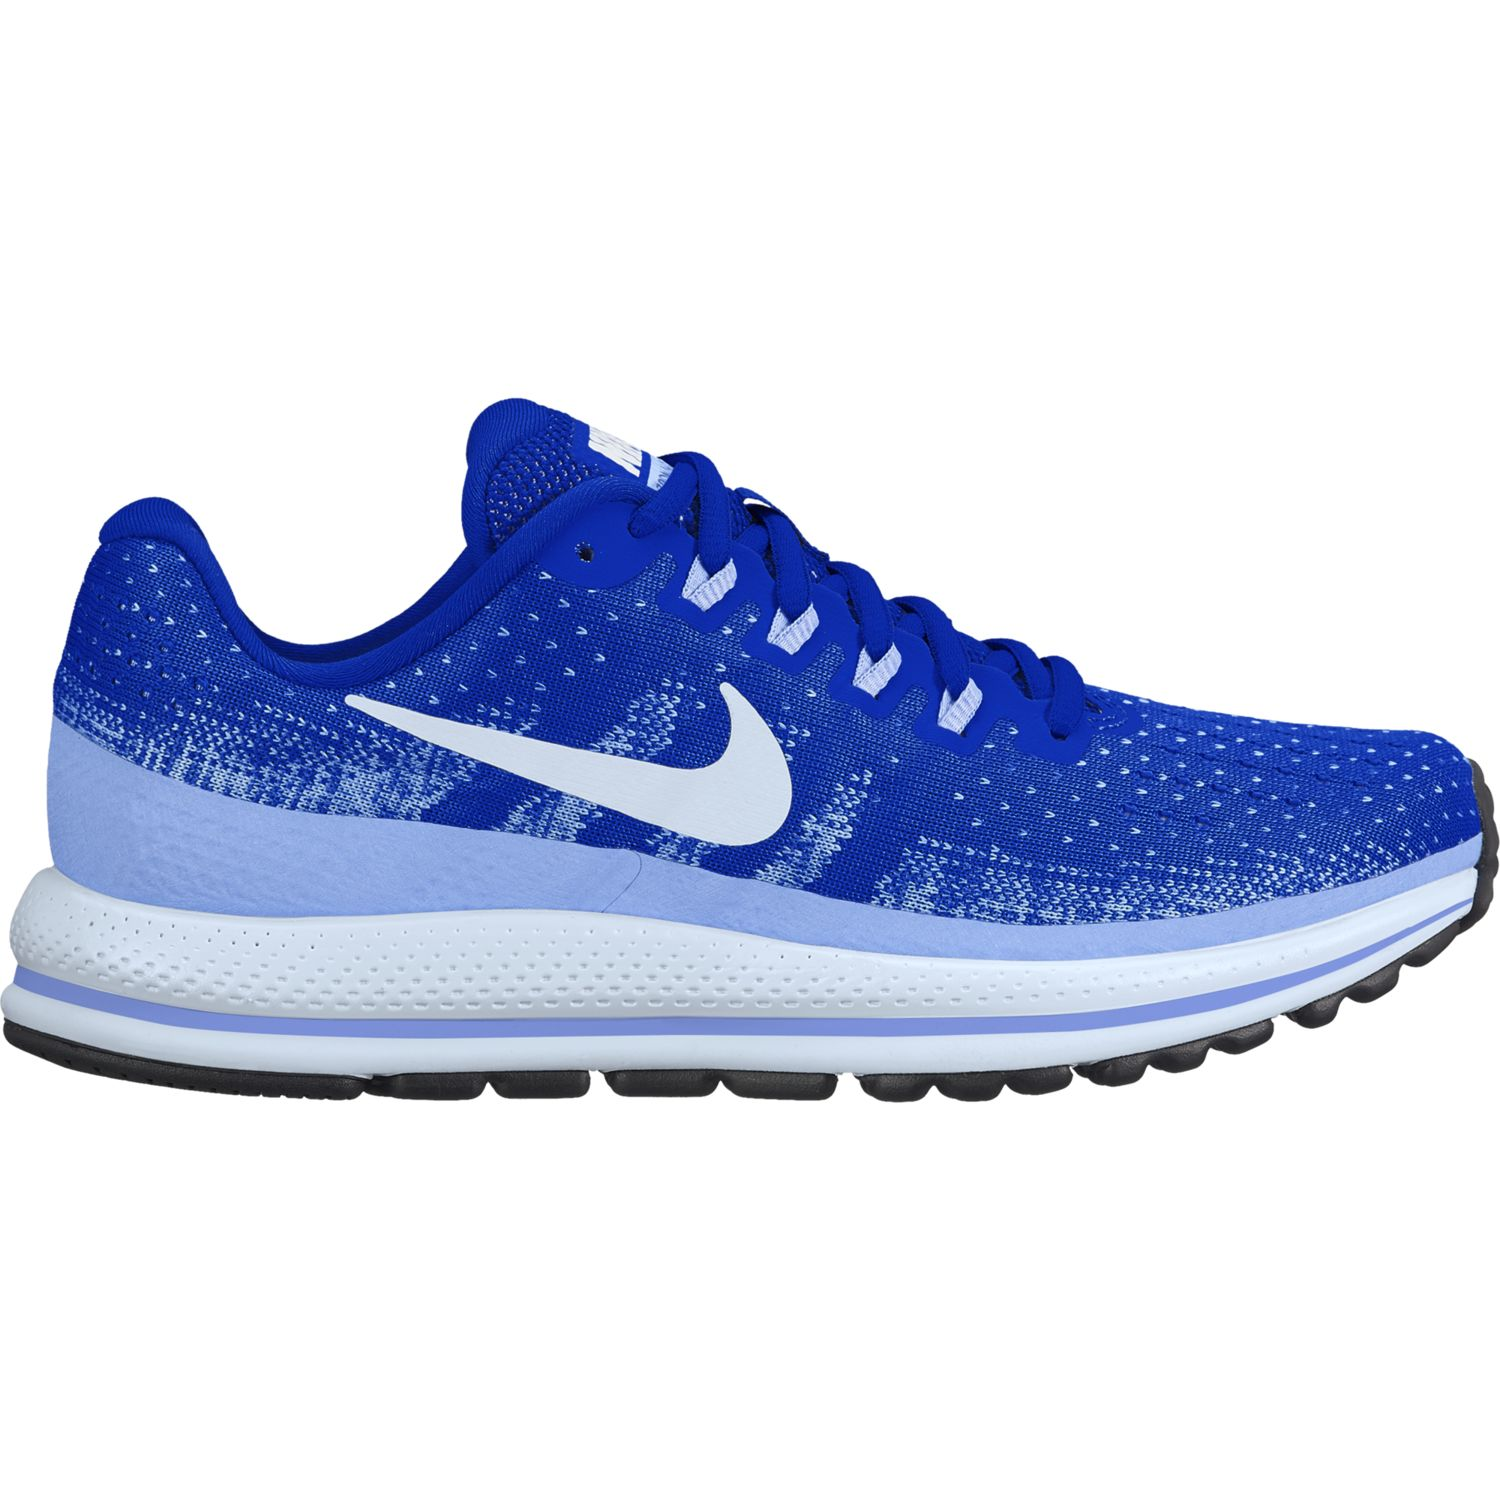 Nike Lady Air Zoom Vomero 13 in Blau